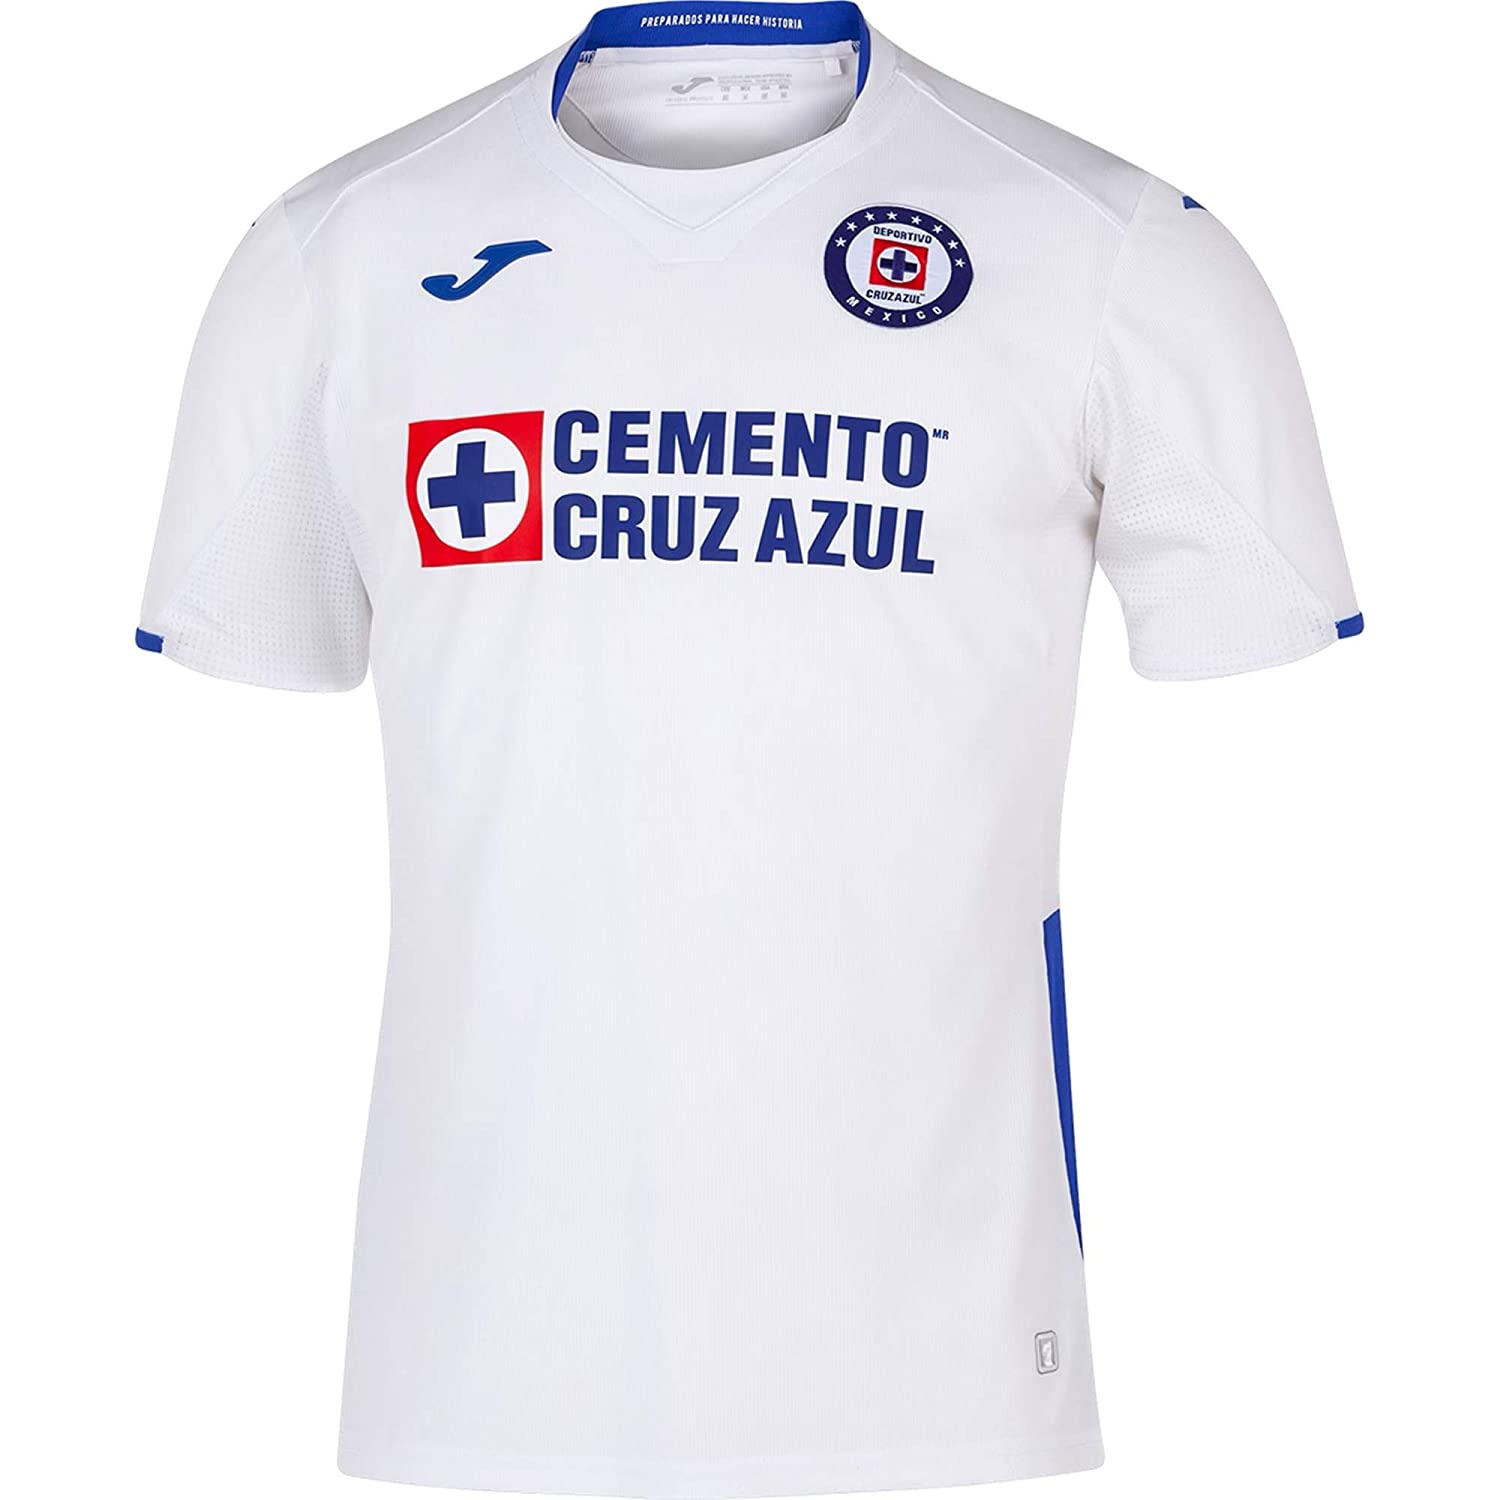 Amazon.com: Cruz Azul 2019/2020 Jersey RELPICA: Sports ...